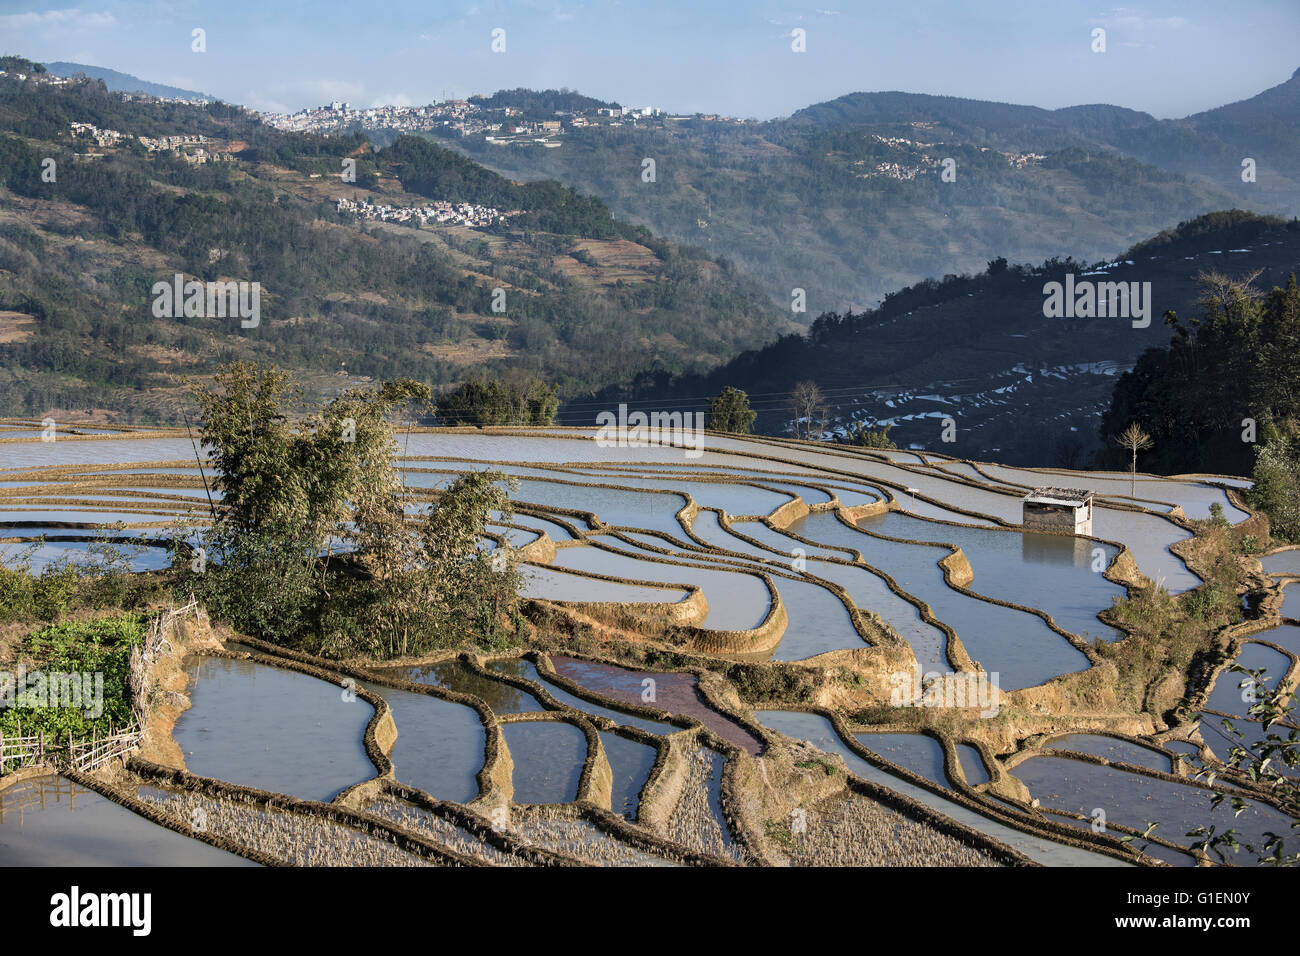 Villages and rice terraces, Quanfuzhuang, Yuanyang County, Yunnan Province, China - Stock Image